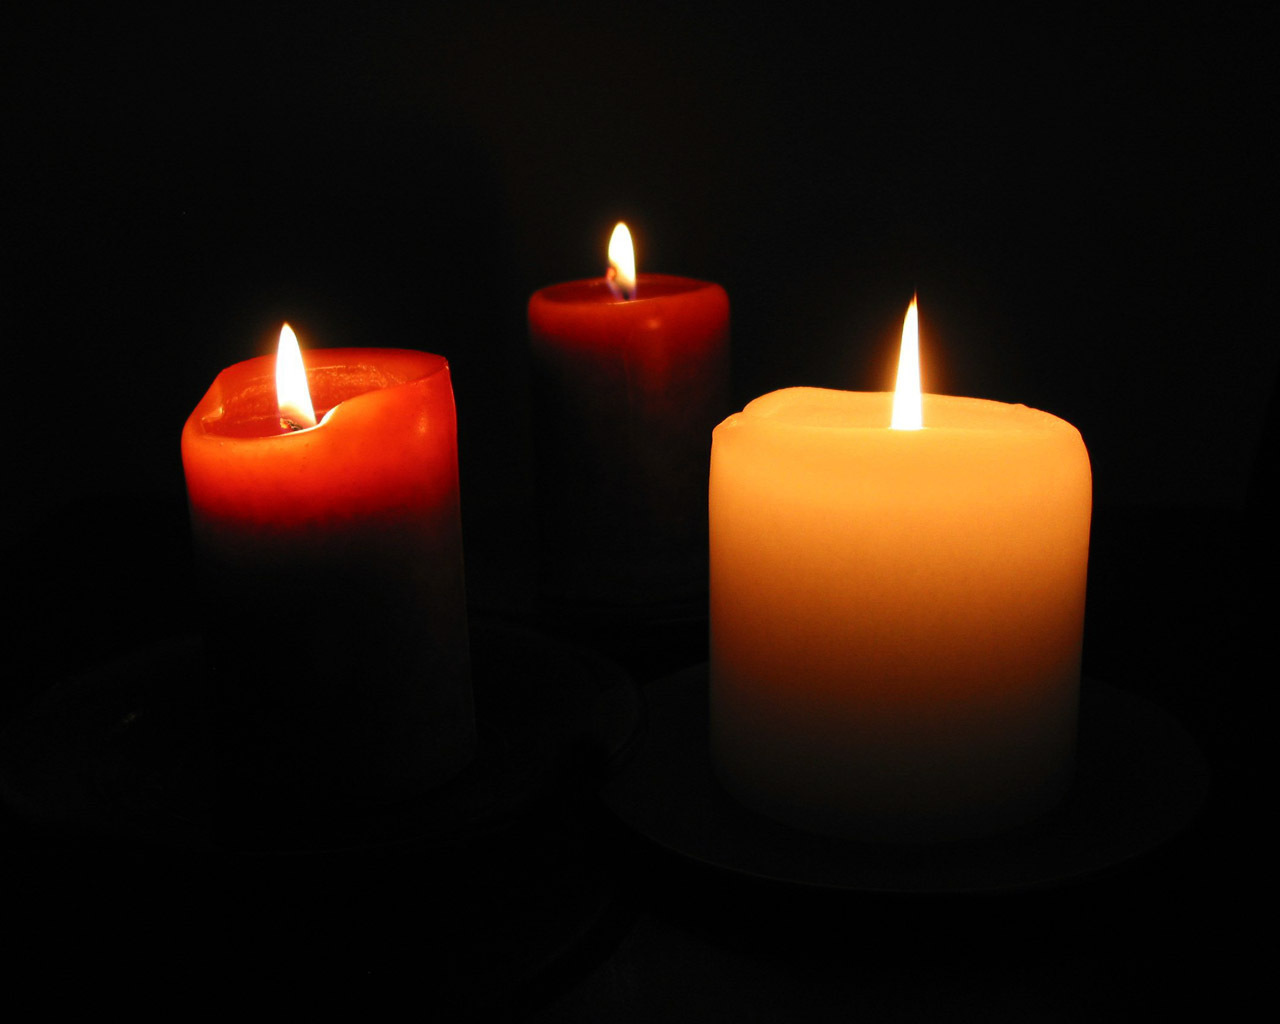 animated candle flame - photo #41